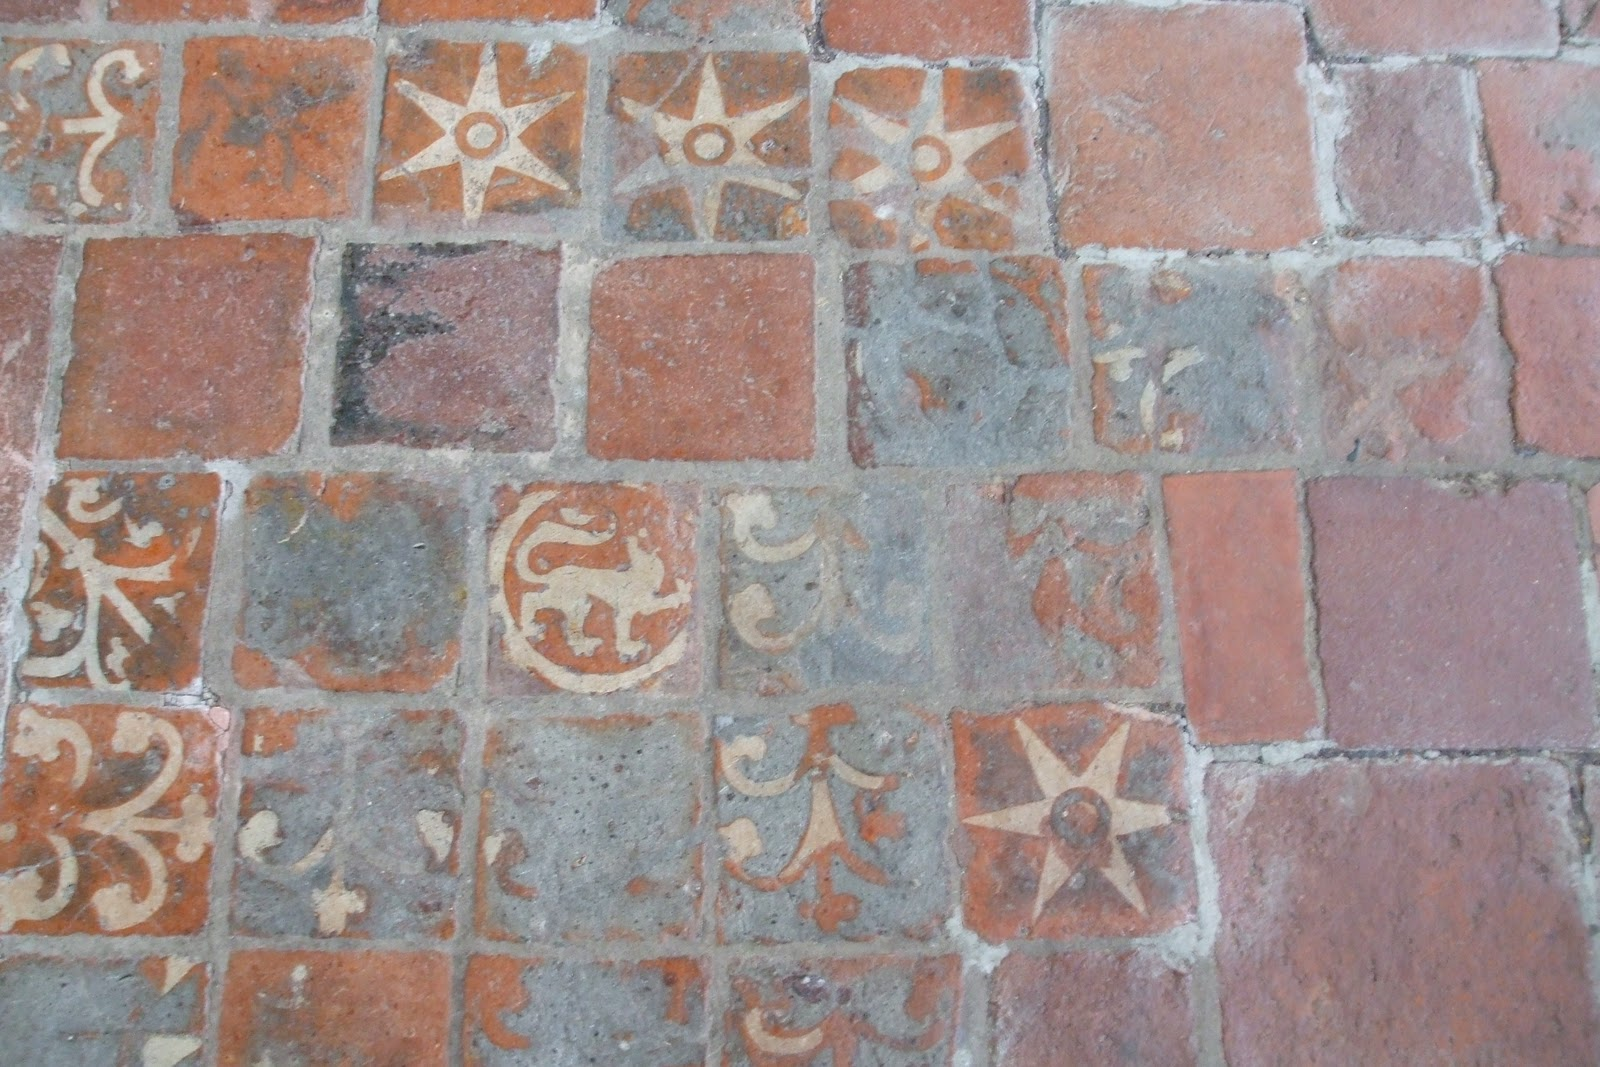 The scottish home old floor tiles in winchester cathedral why the seemingly haphazard arrangement did it have some significance or was it simply that some tiles wore away and had to dailygadgetfo Image collections